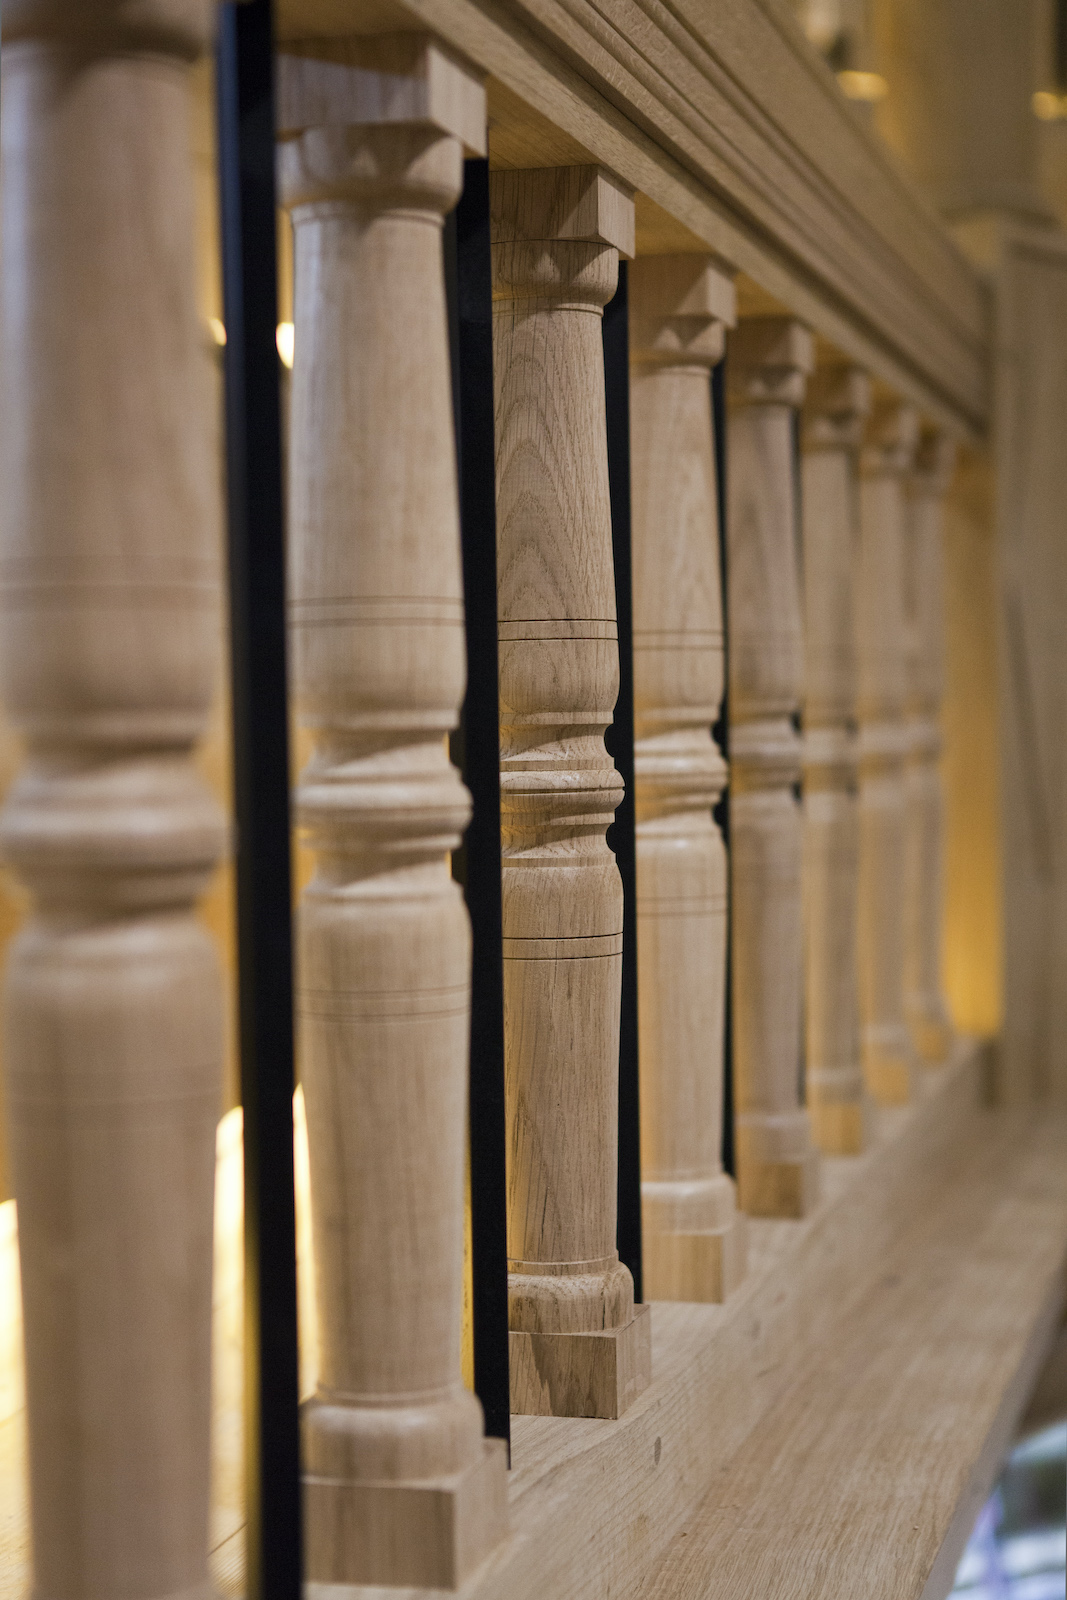 A close up of the wooden bars that line a gallery of a stage